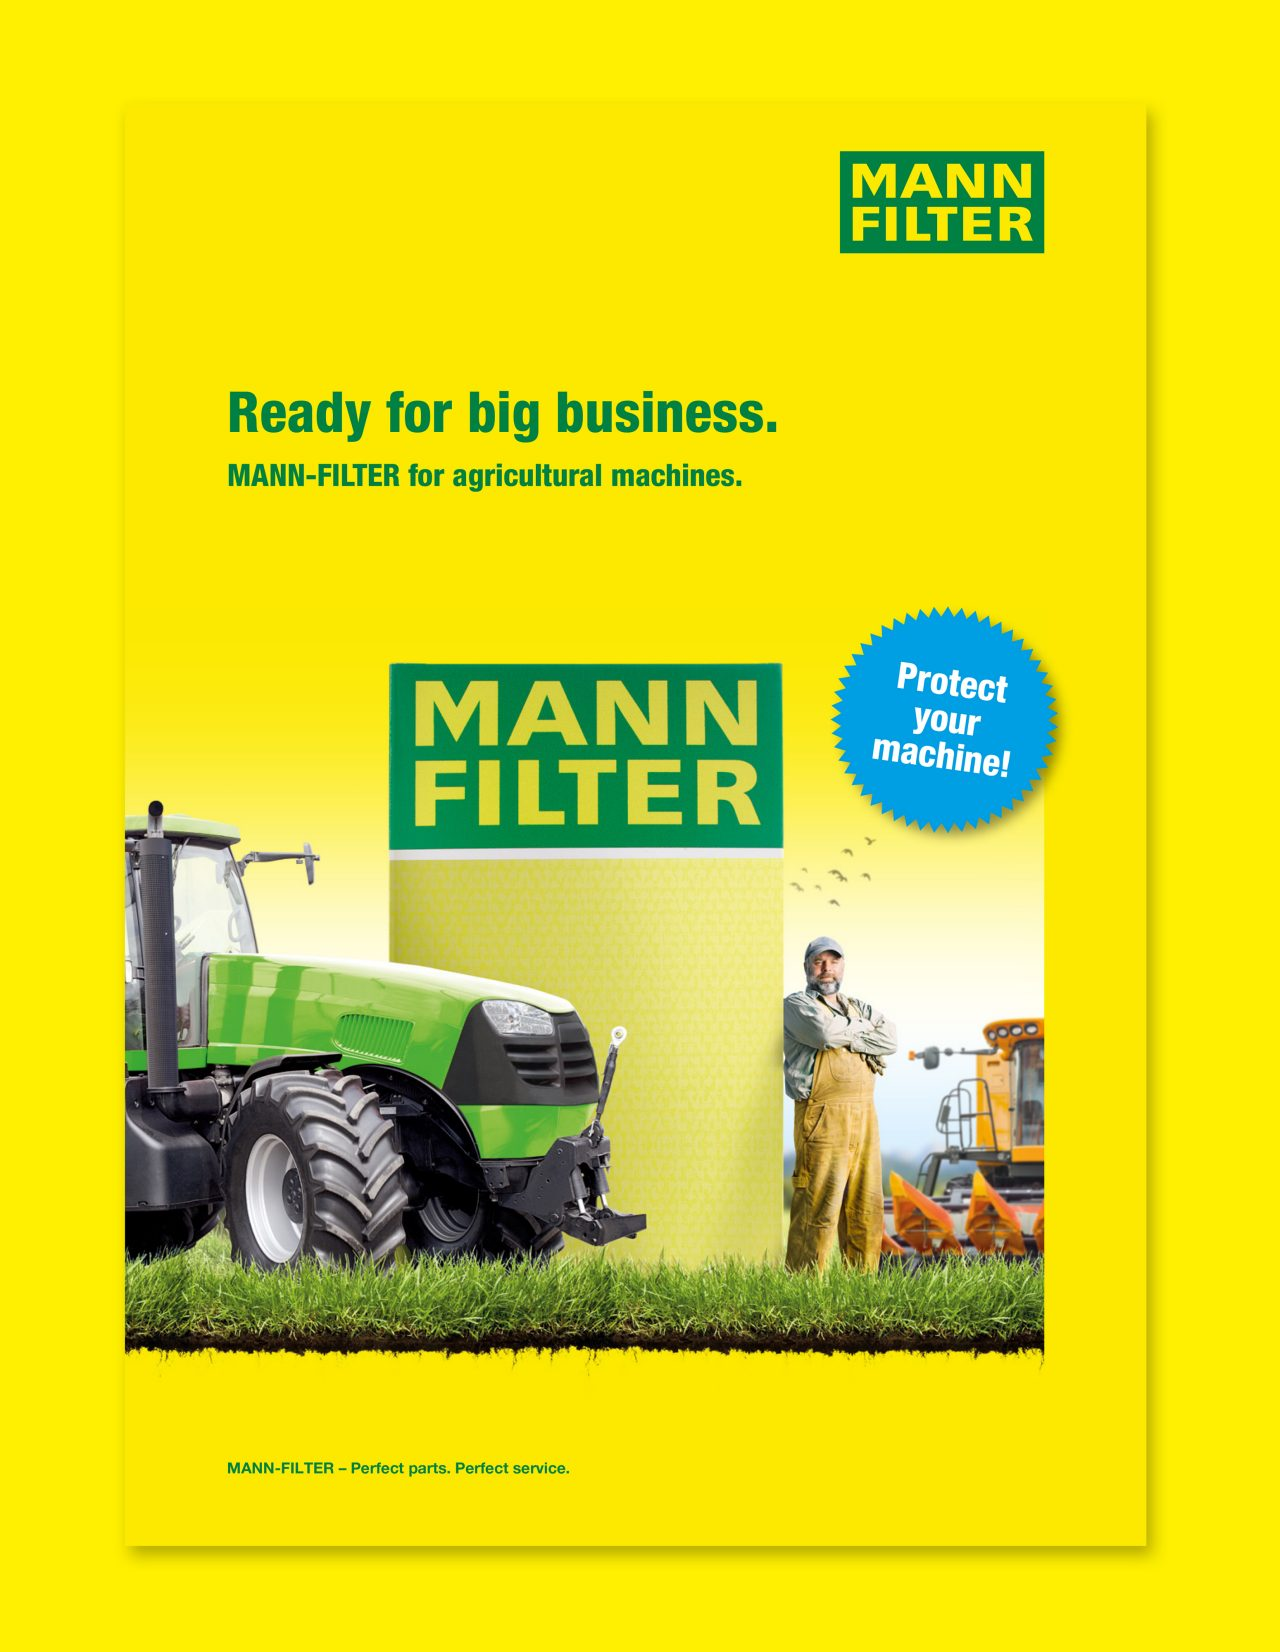 Discover the MANN-FILTER products for agricultural machines